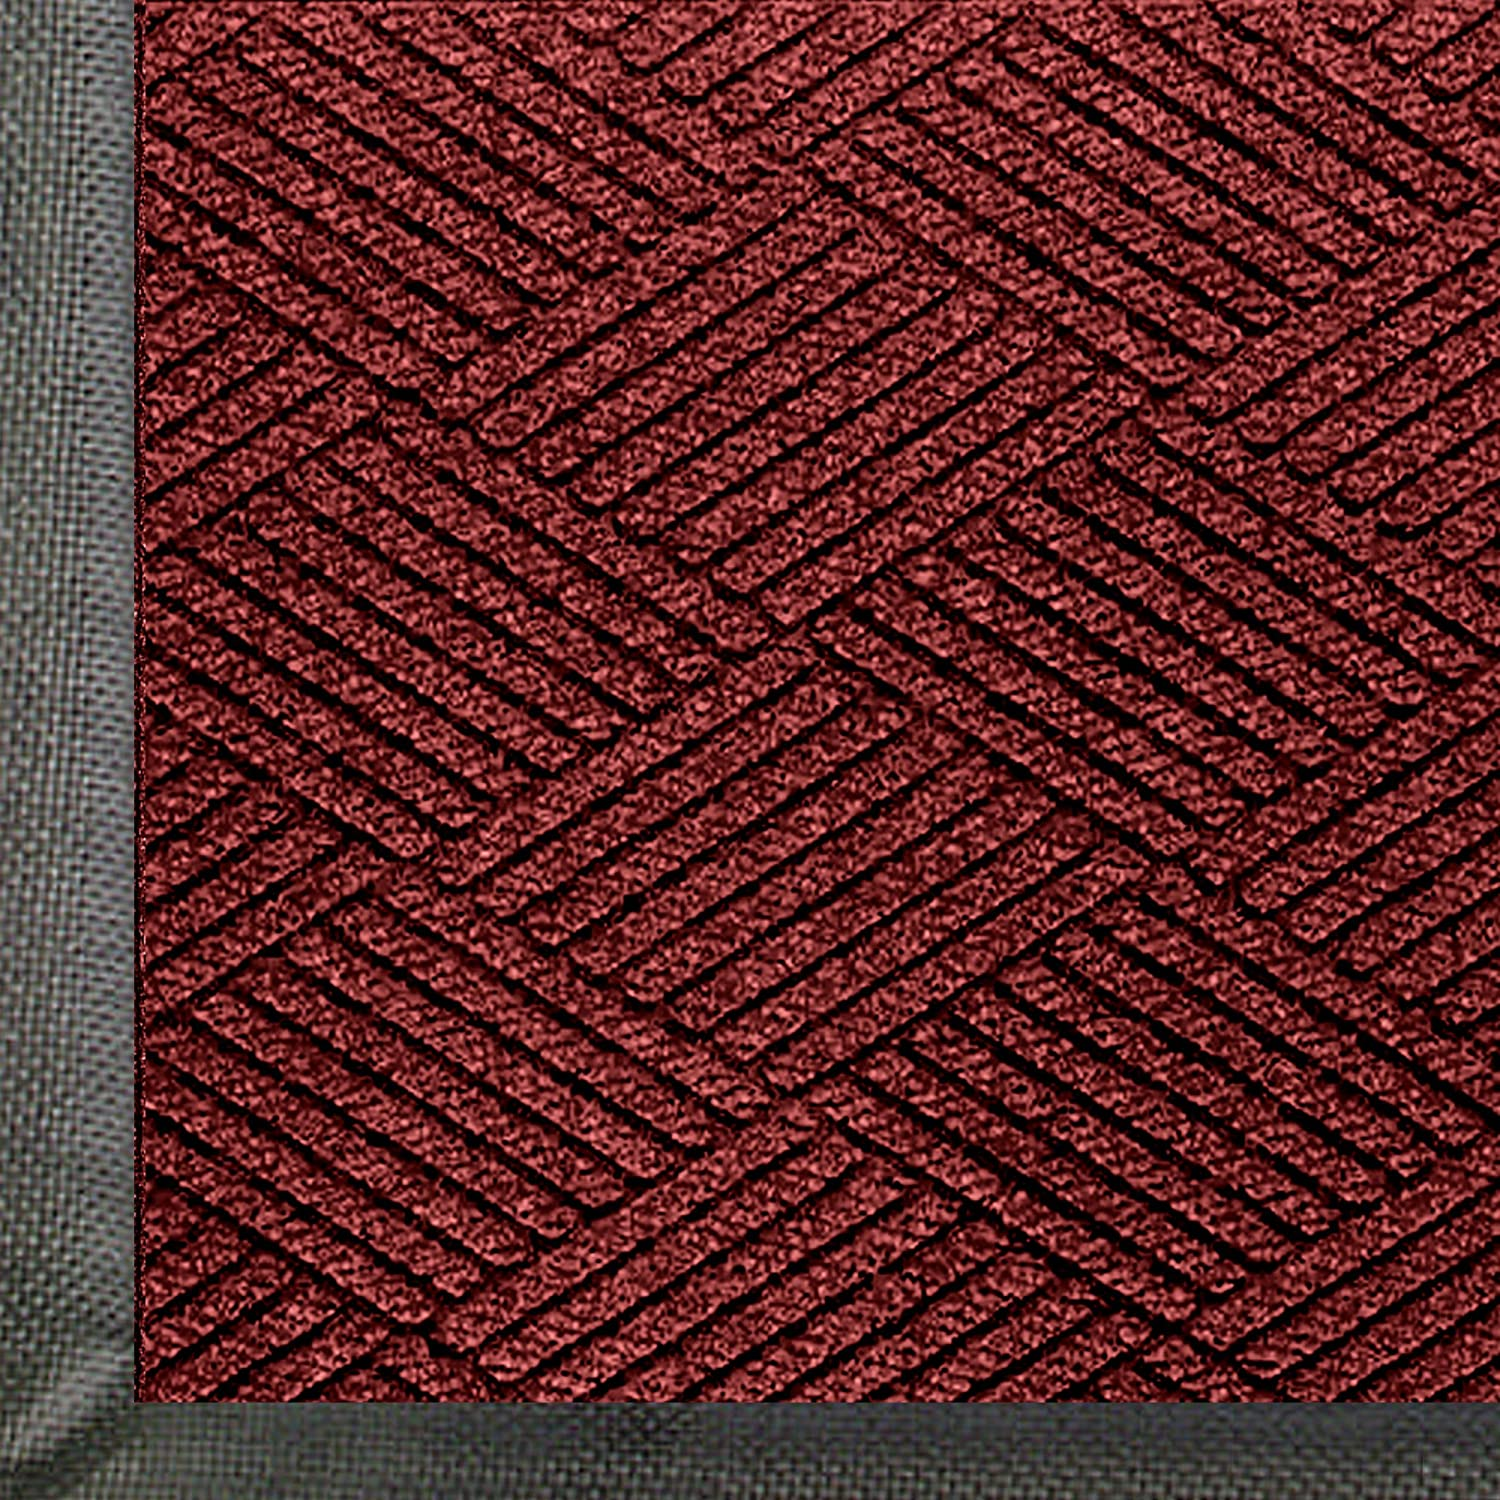 M+A Matting 2295 Regal Red PET Polyester Waterhog ECO Premier Entrance Mat 5 Length x 3 Width For Indoor//Outdoor 5/' Length x 3/' Width 2295-177-5F3F